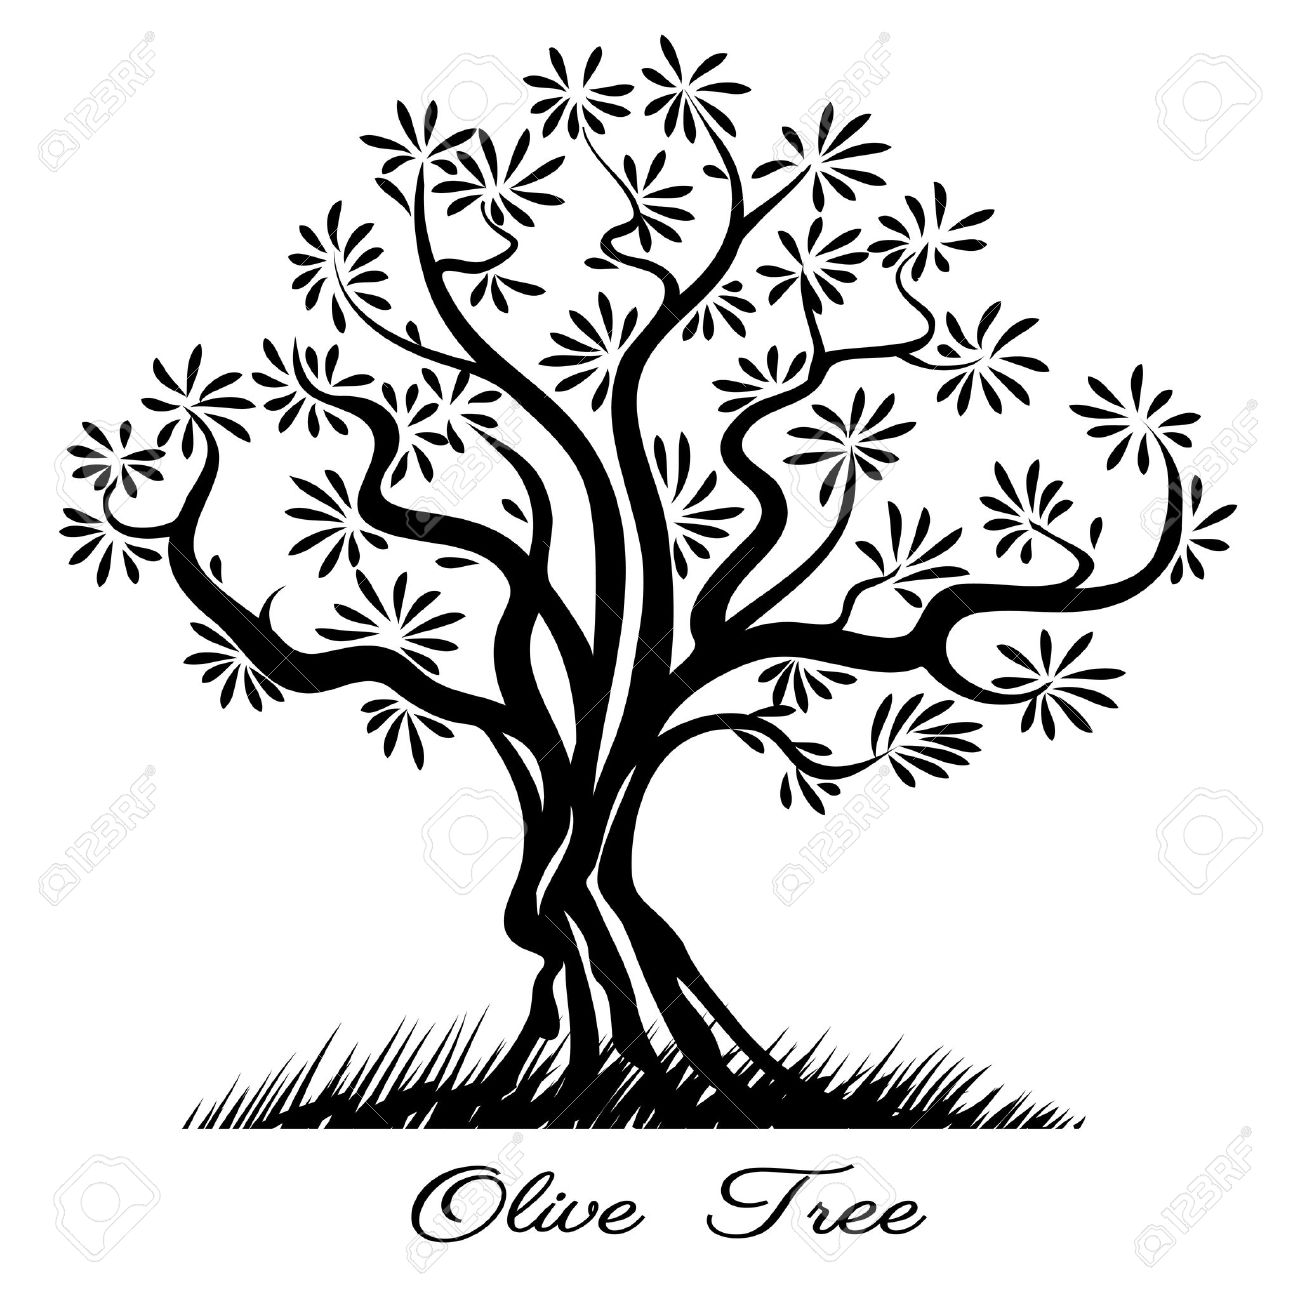 1300x1300 Olive Tree Silhouette. Sketch Wood Painted Black Lines. Vector